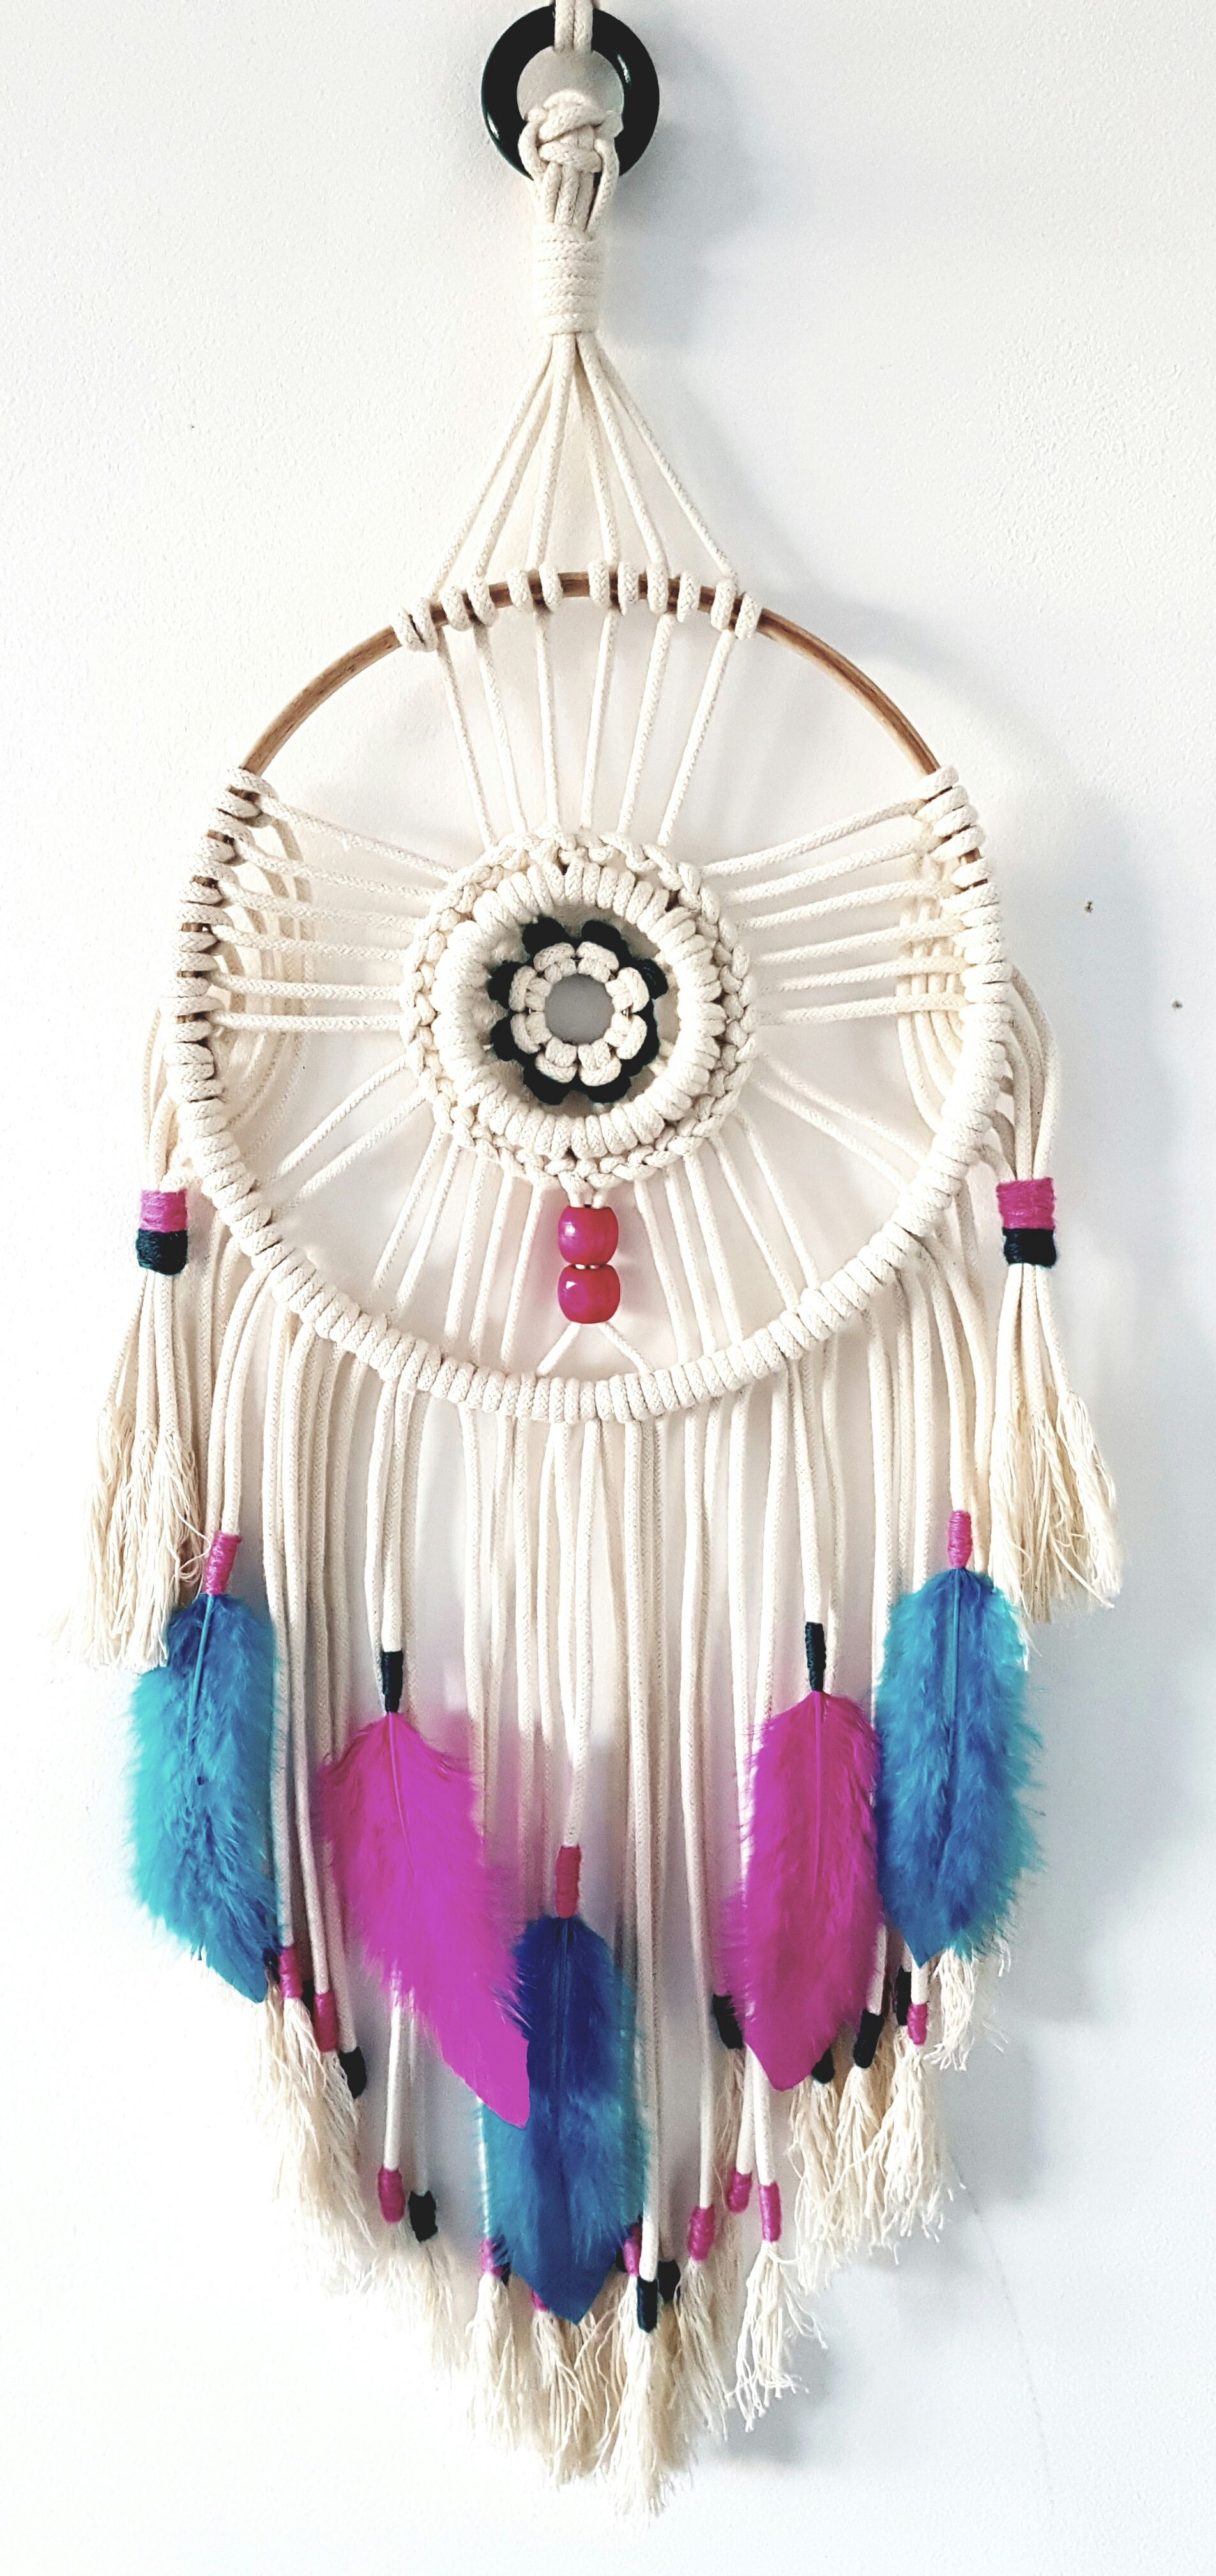 Dream Catcher Group Home Boho Wall Hanging Wedding Decor Large Macrame Dreamcatcher 40